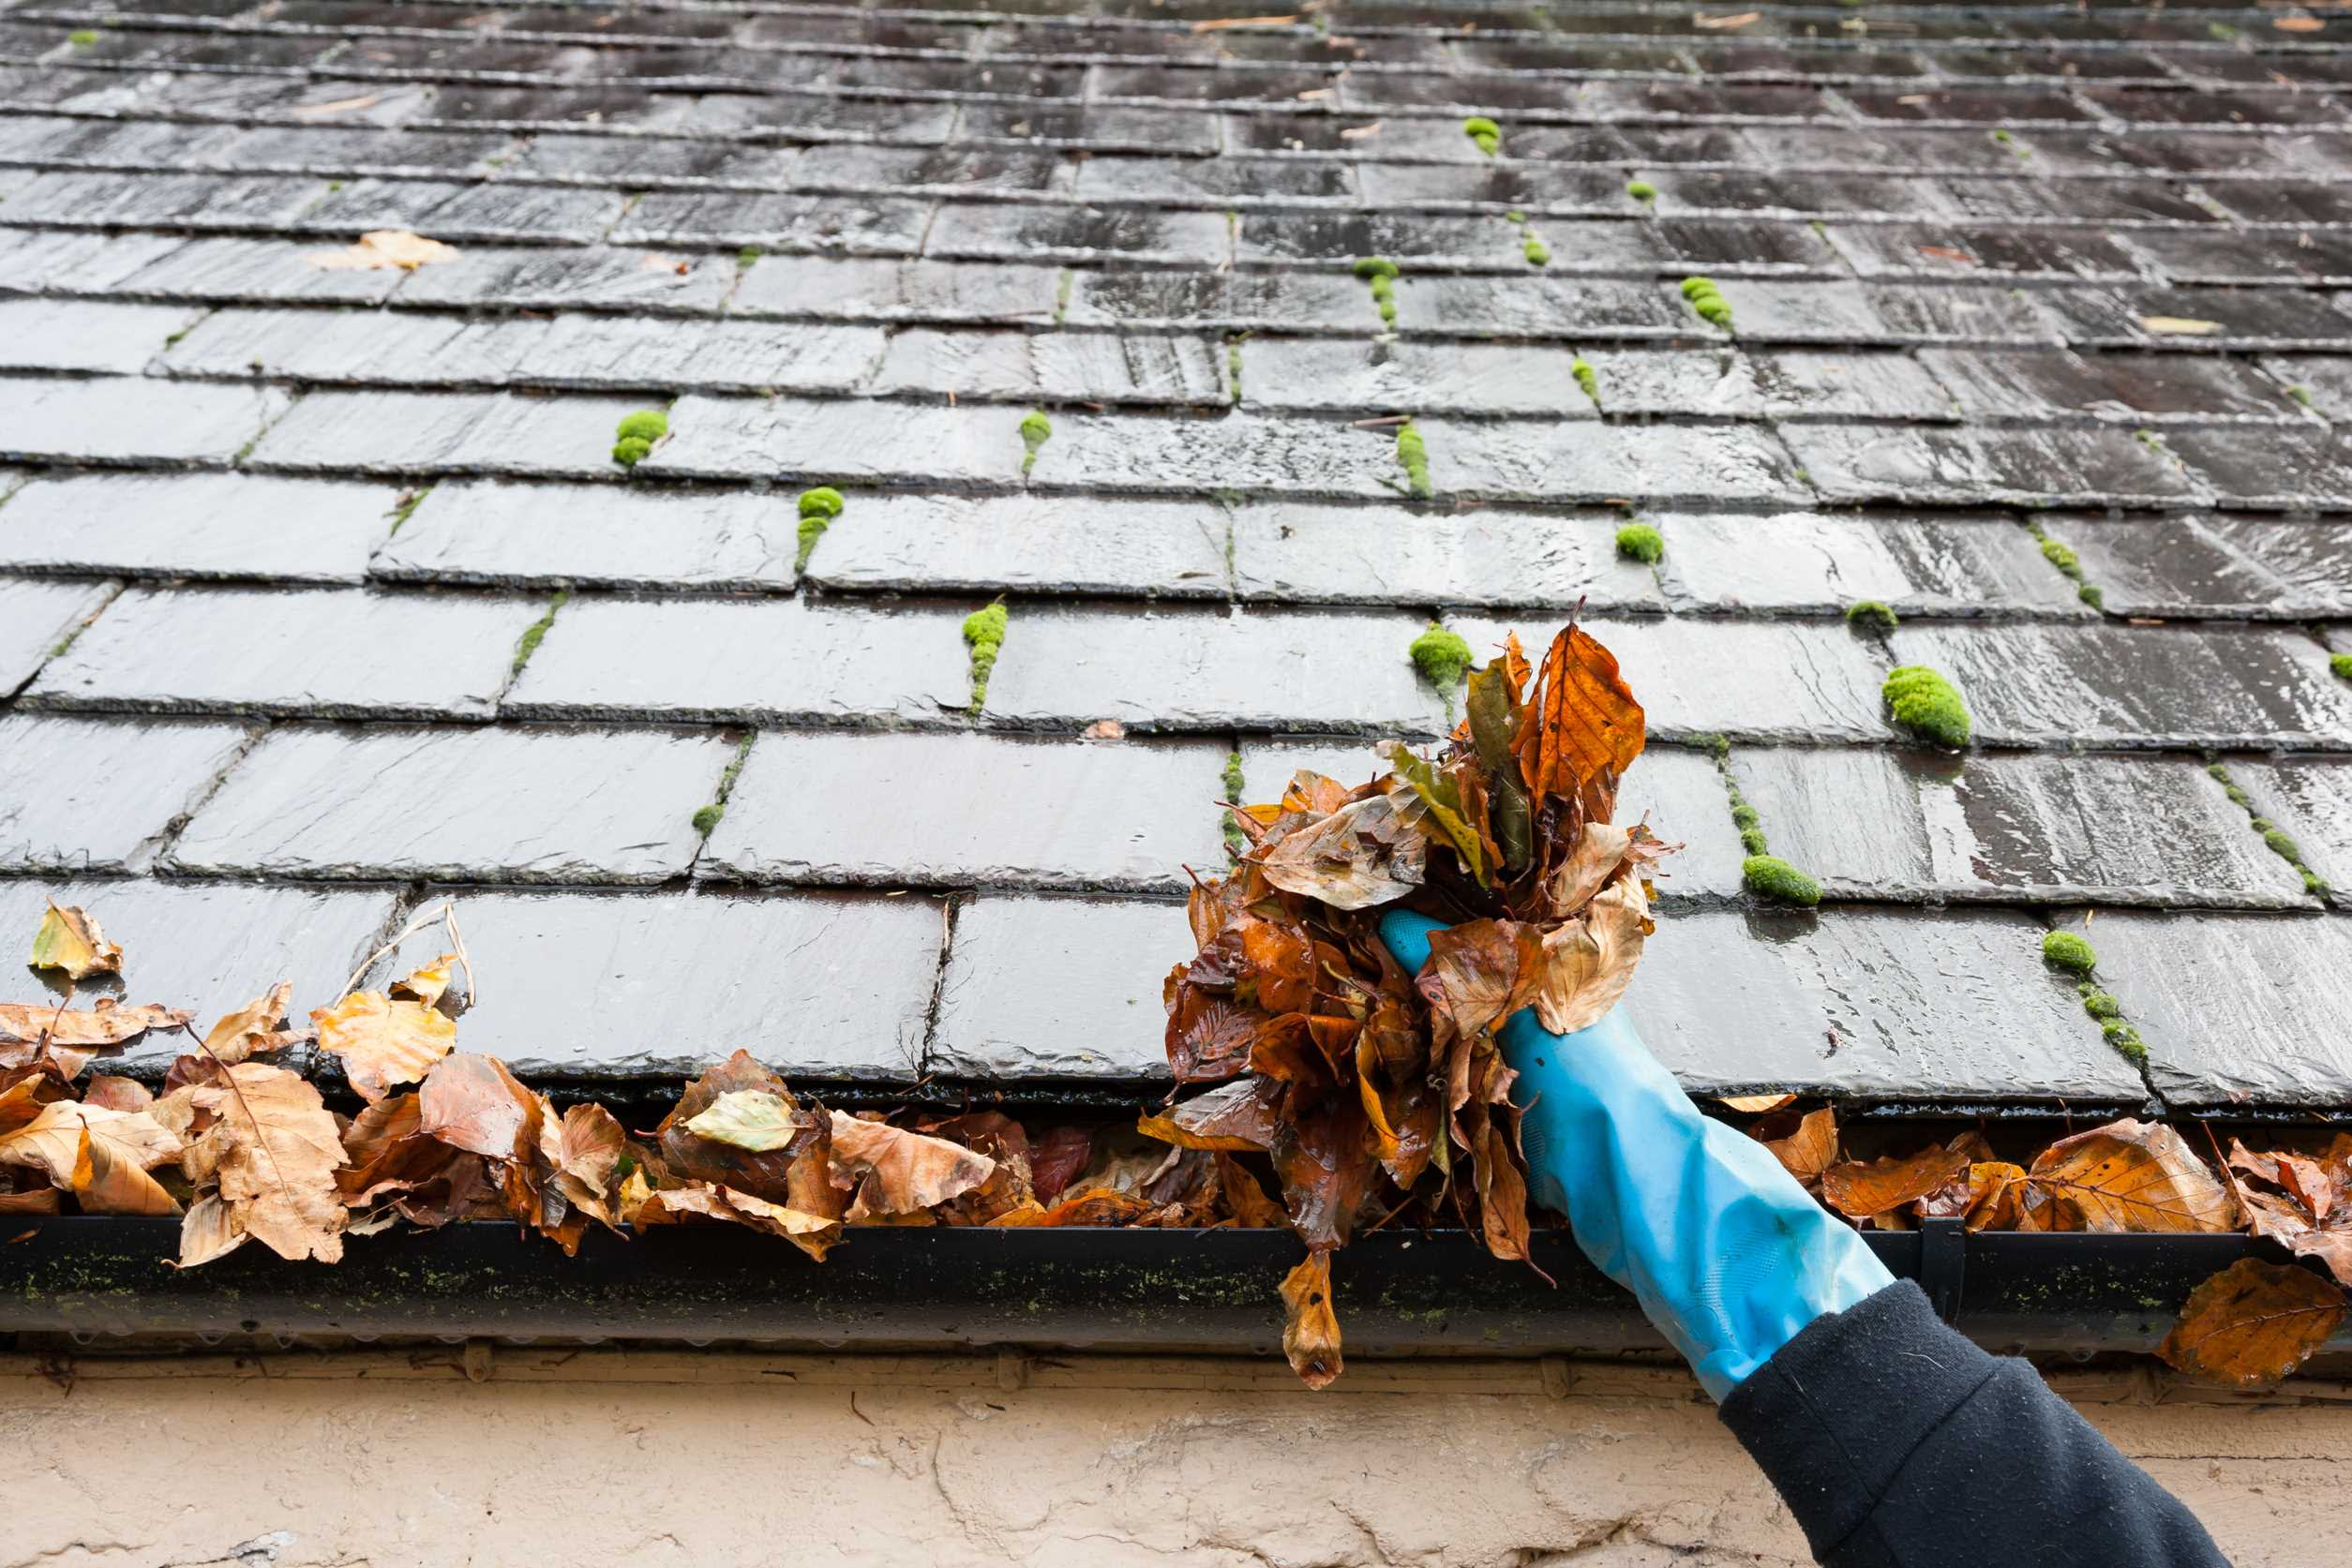 Gutter cleaning local cut tiles without a tile cutter